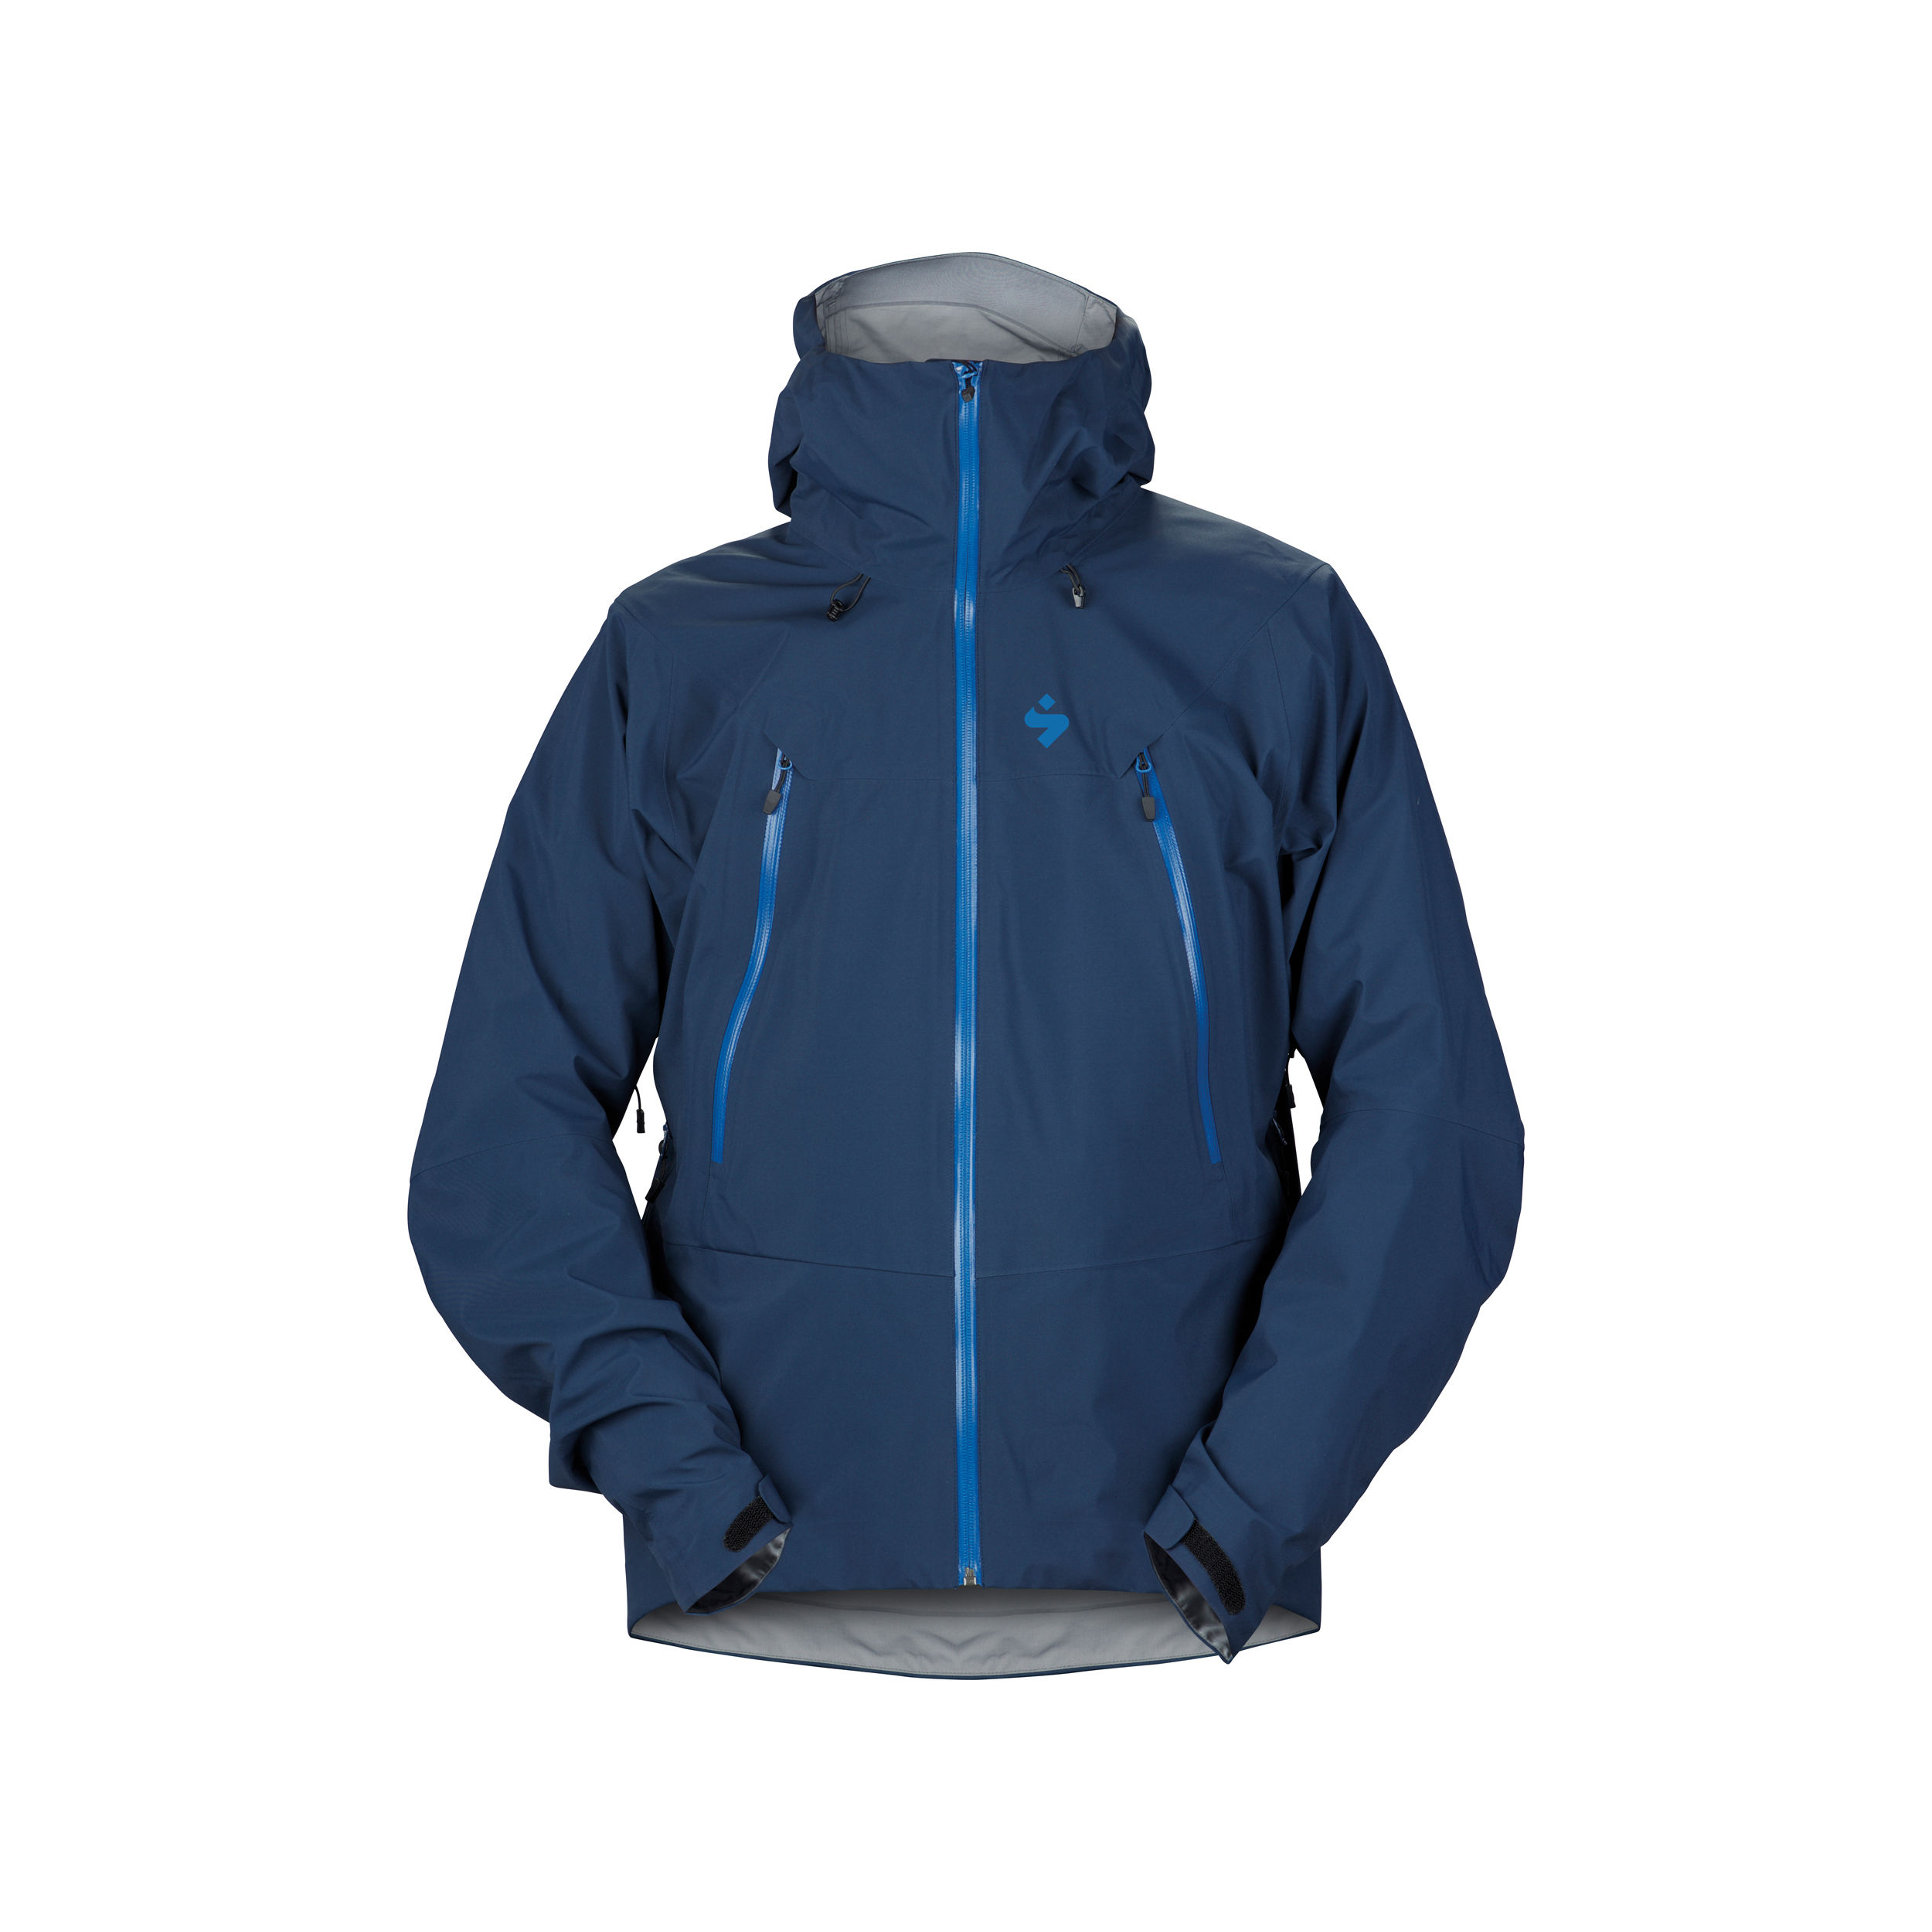 Salvation GORE-TEX Jacket Mens | Sweet Protection